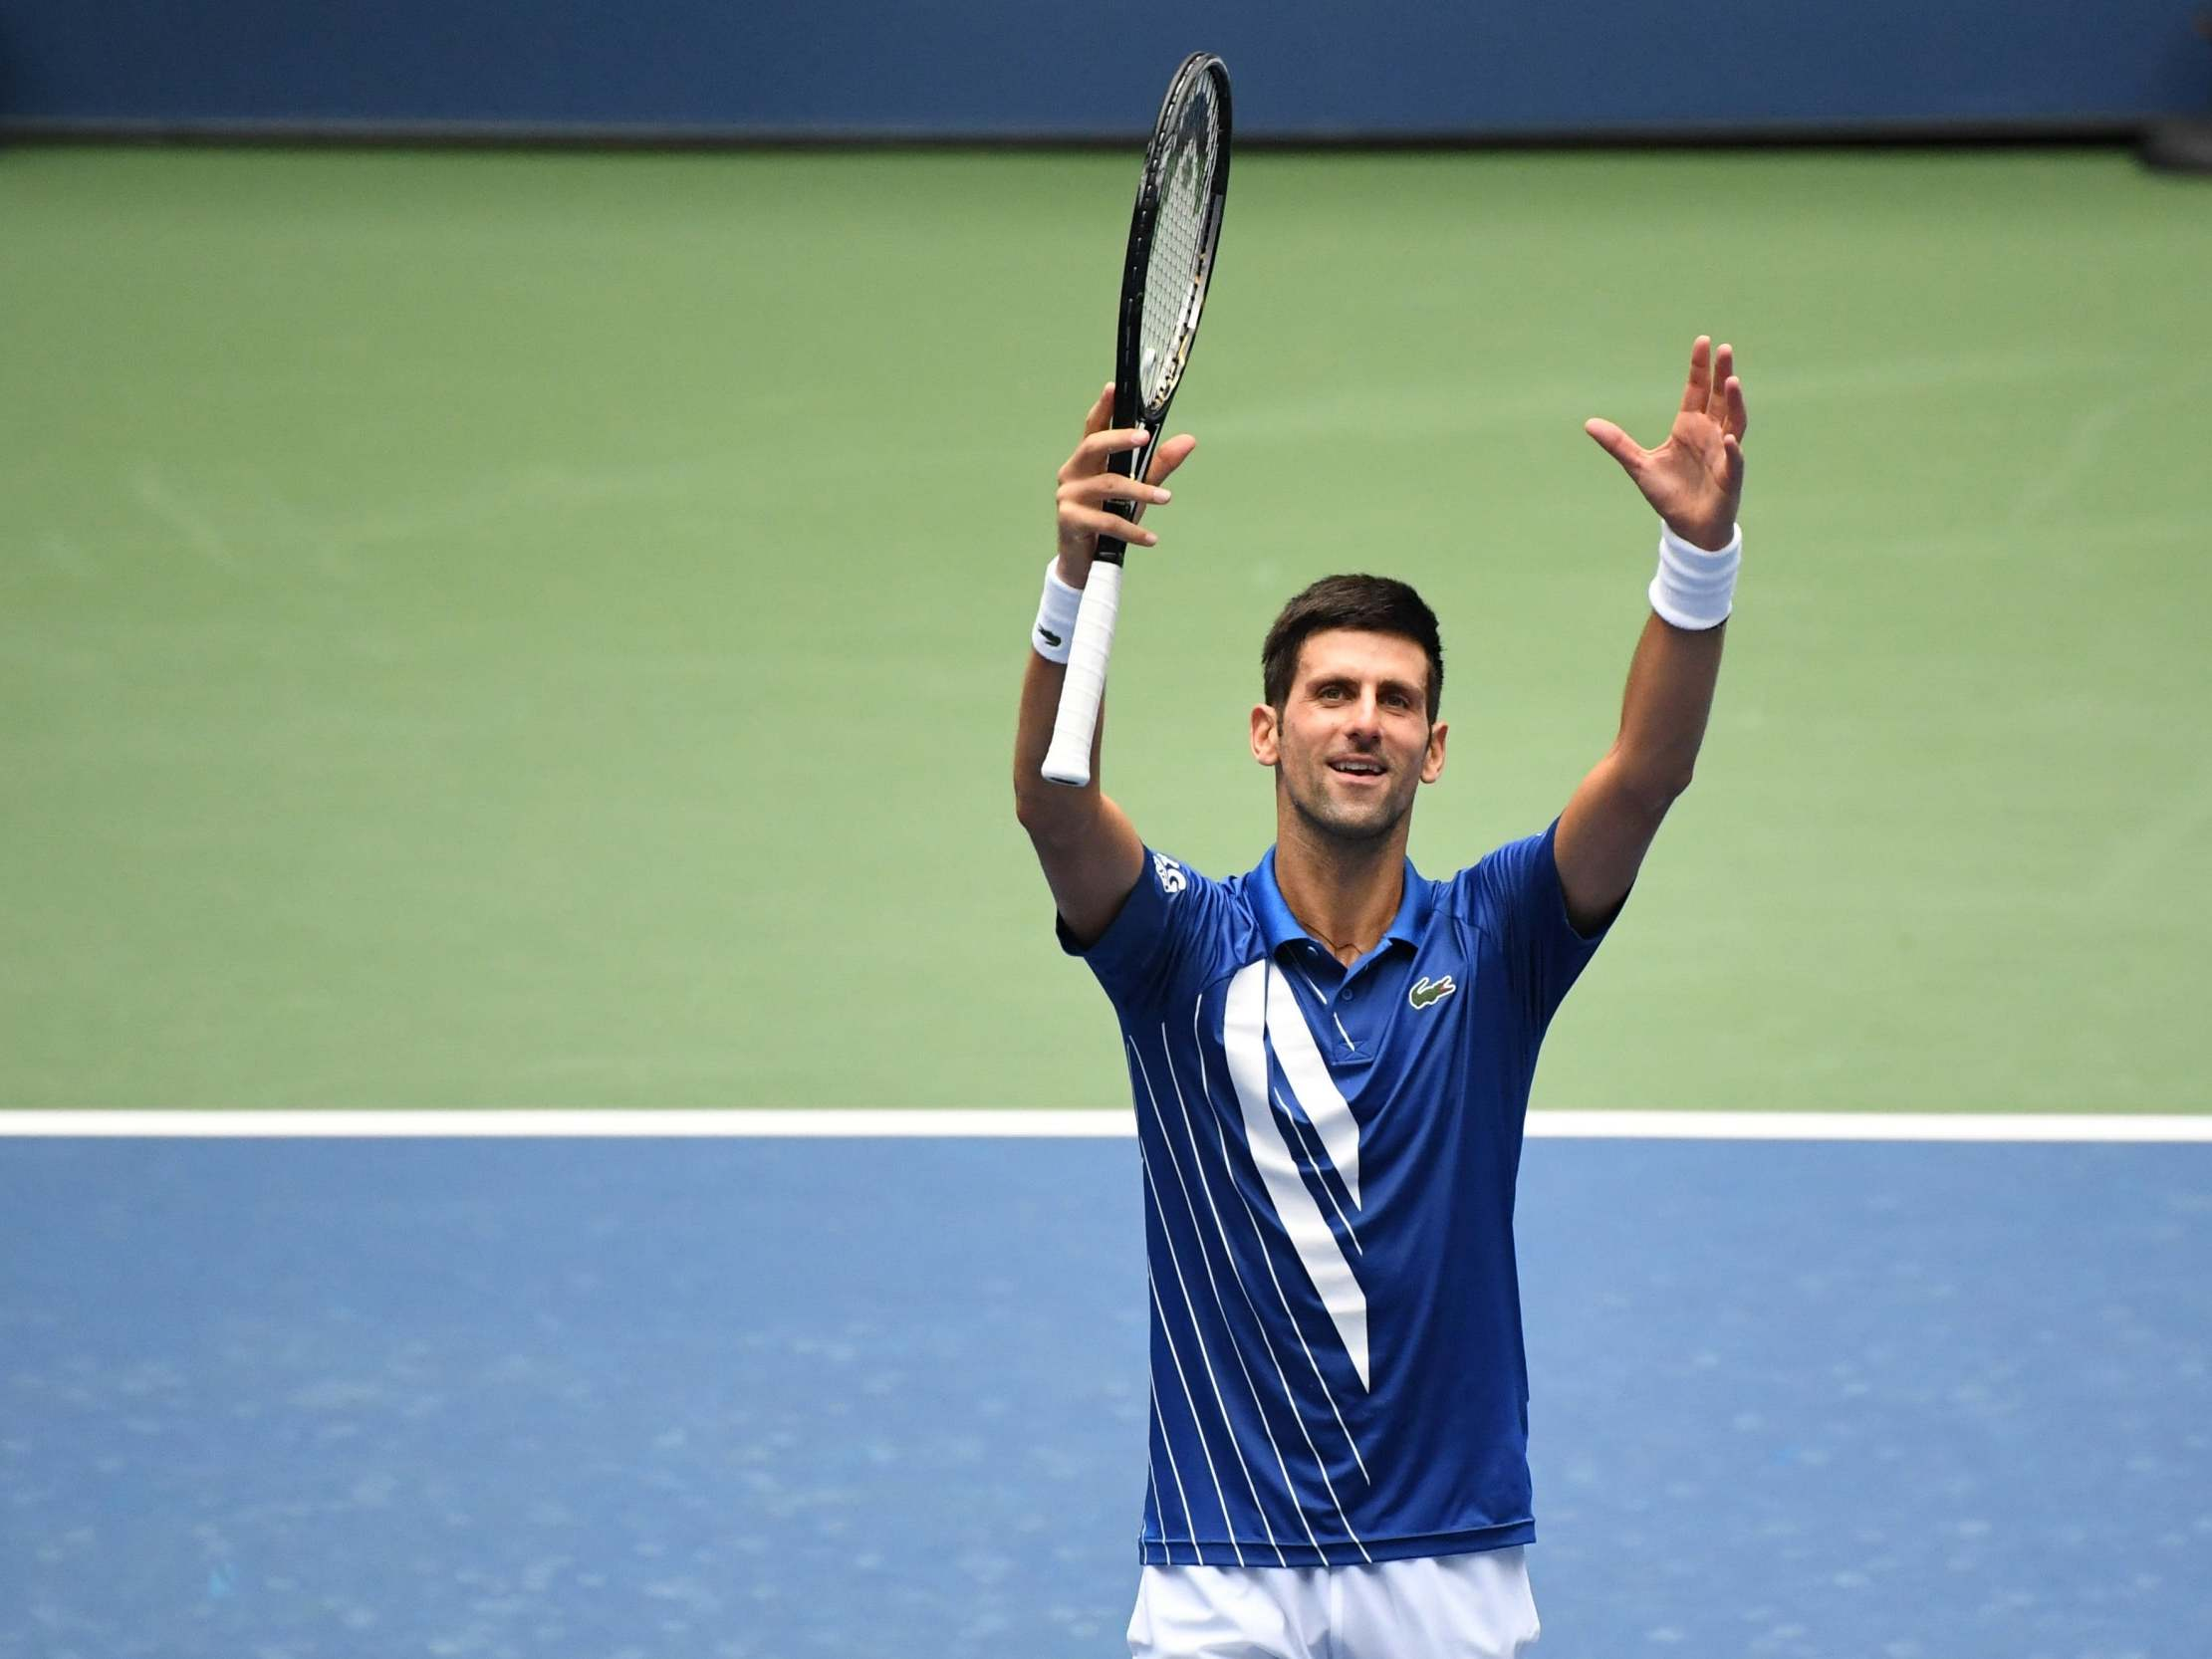 Us Open Results Novak Djokovic Survives Scare To Eliminate Kyle Edmund As Cameron Norrie Reaches Third Round The Independent The Independent